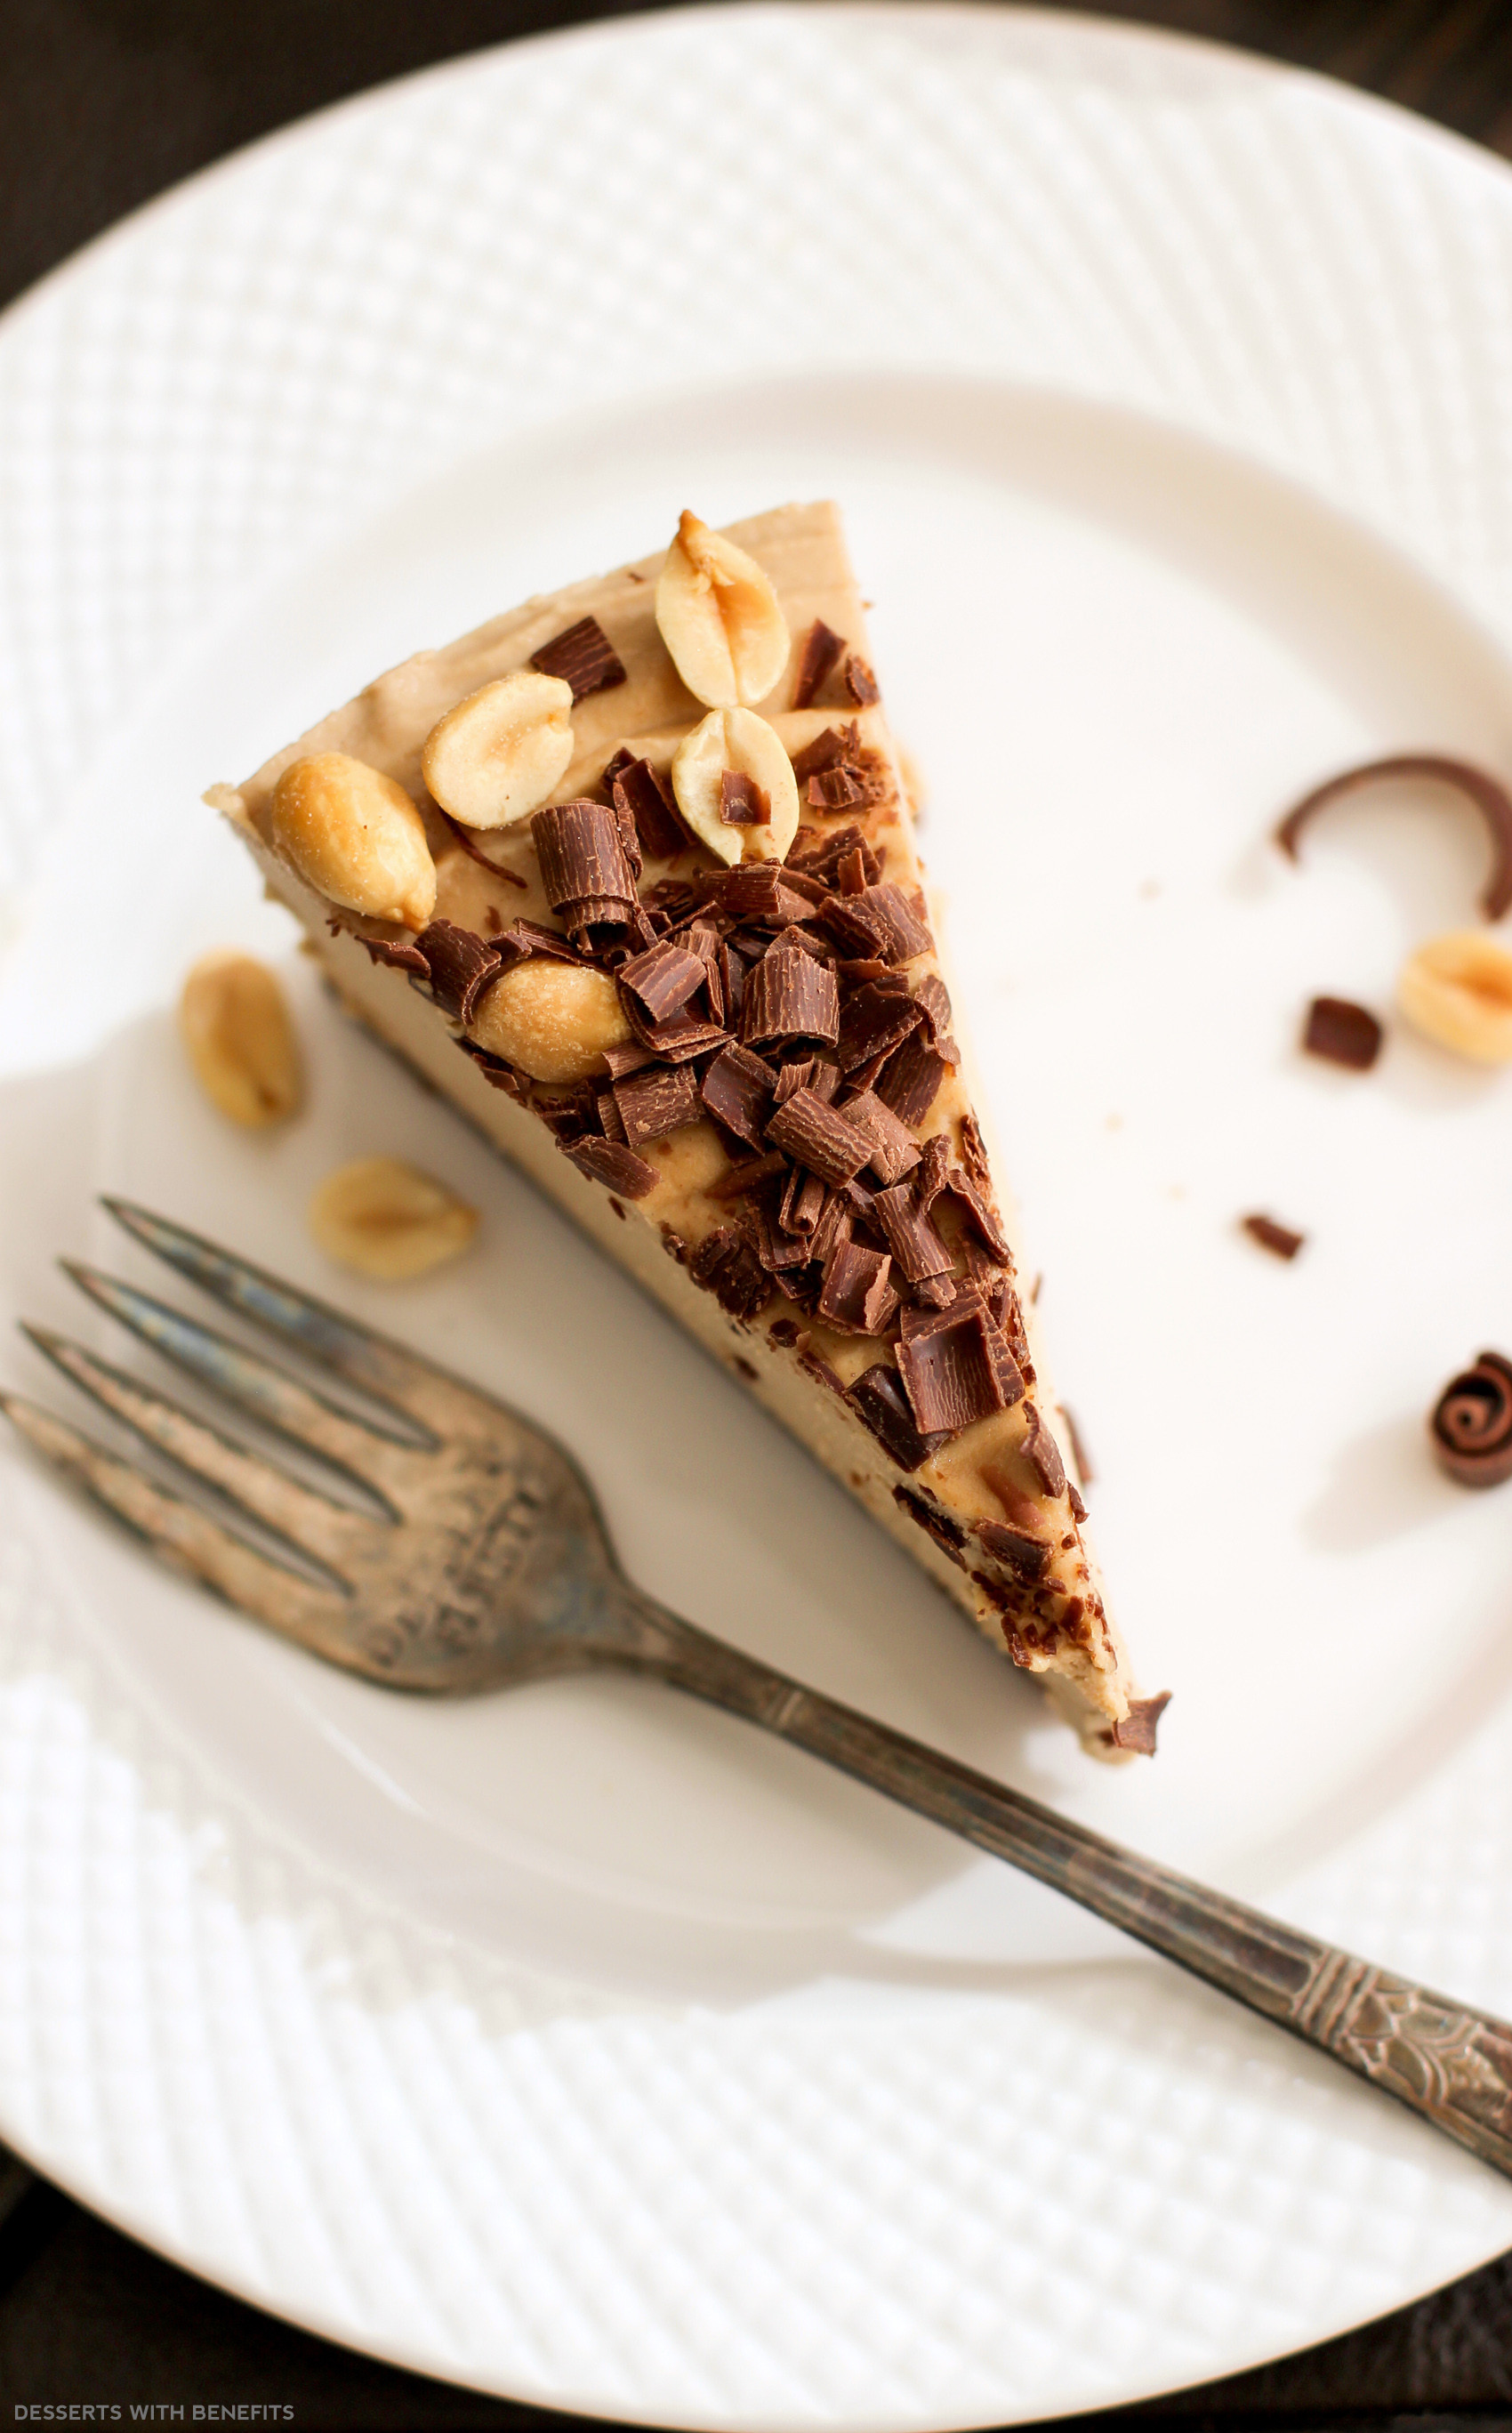 Healthy Peanut Butter Dessert Recipes  Healthy Chocolate Peanut Butter Raw Cheesecake